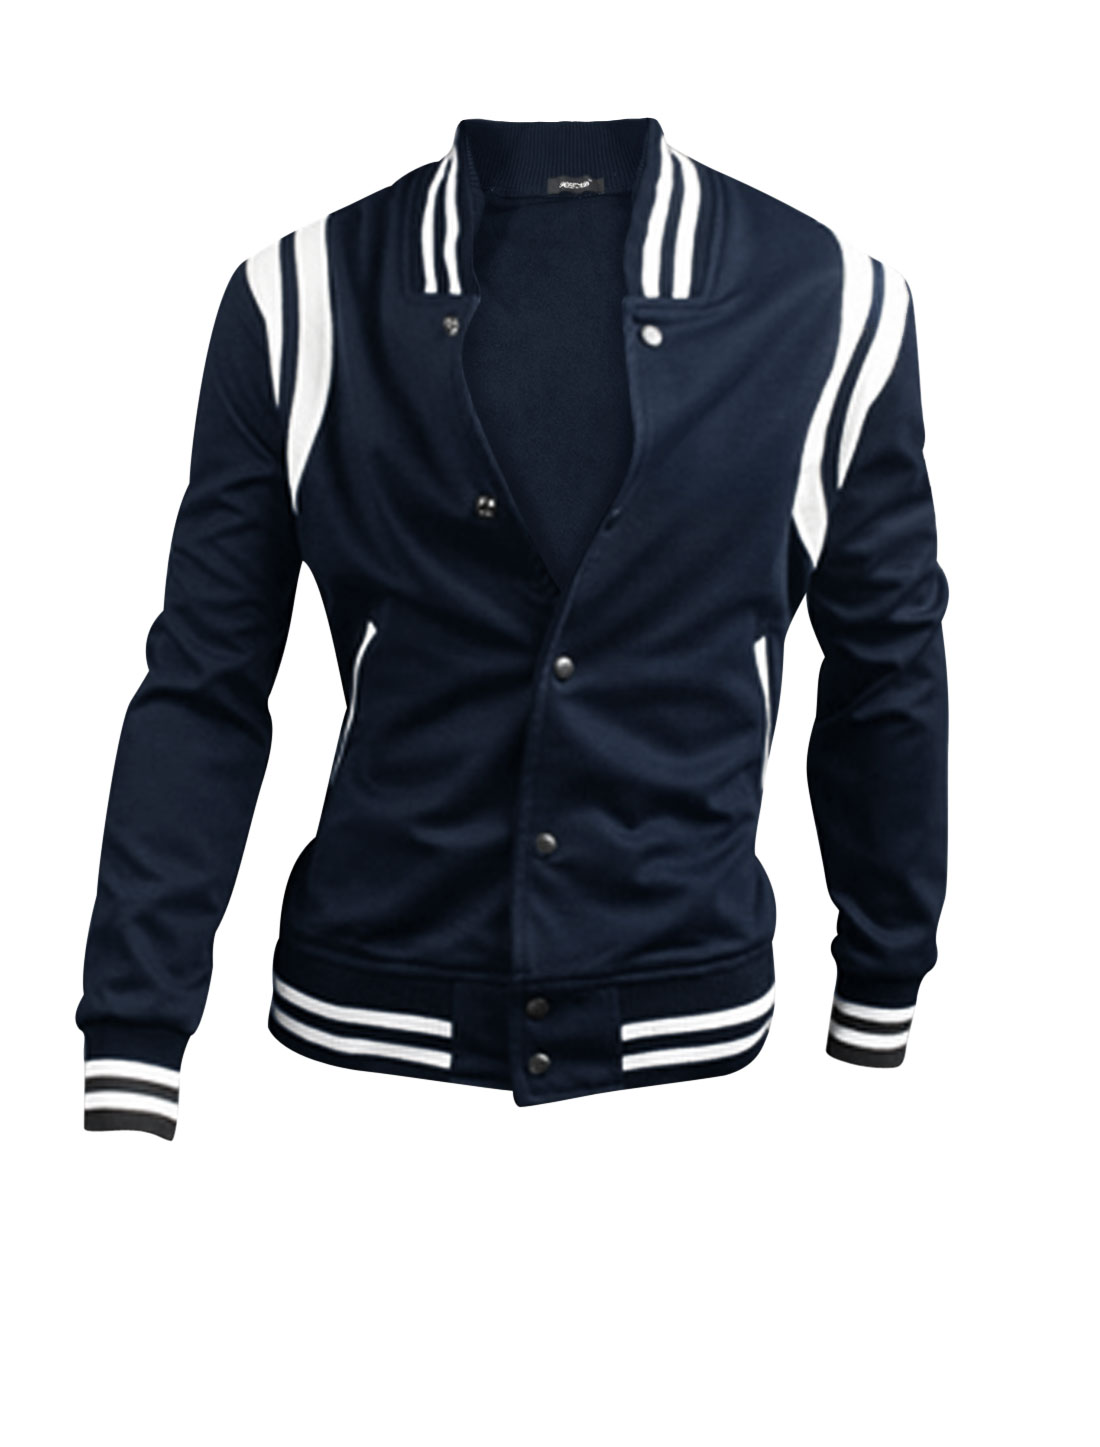 Men Color Block Stretchy Waist Single Breasted Ball Jacket Navy Blue M